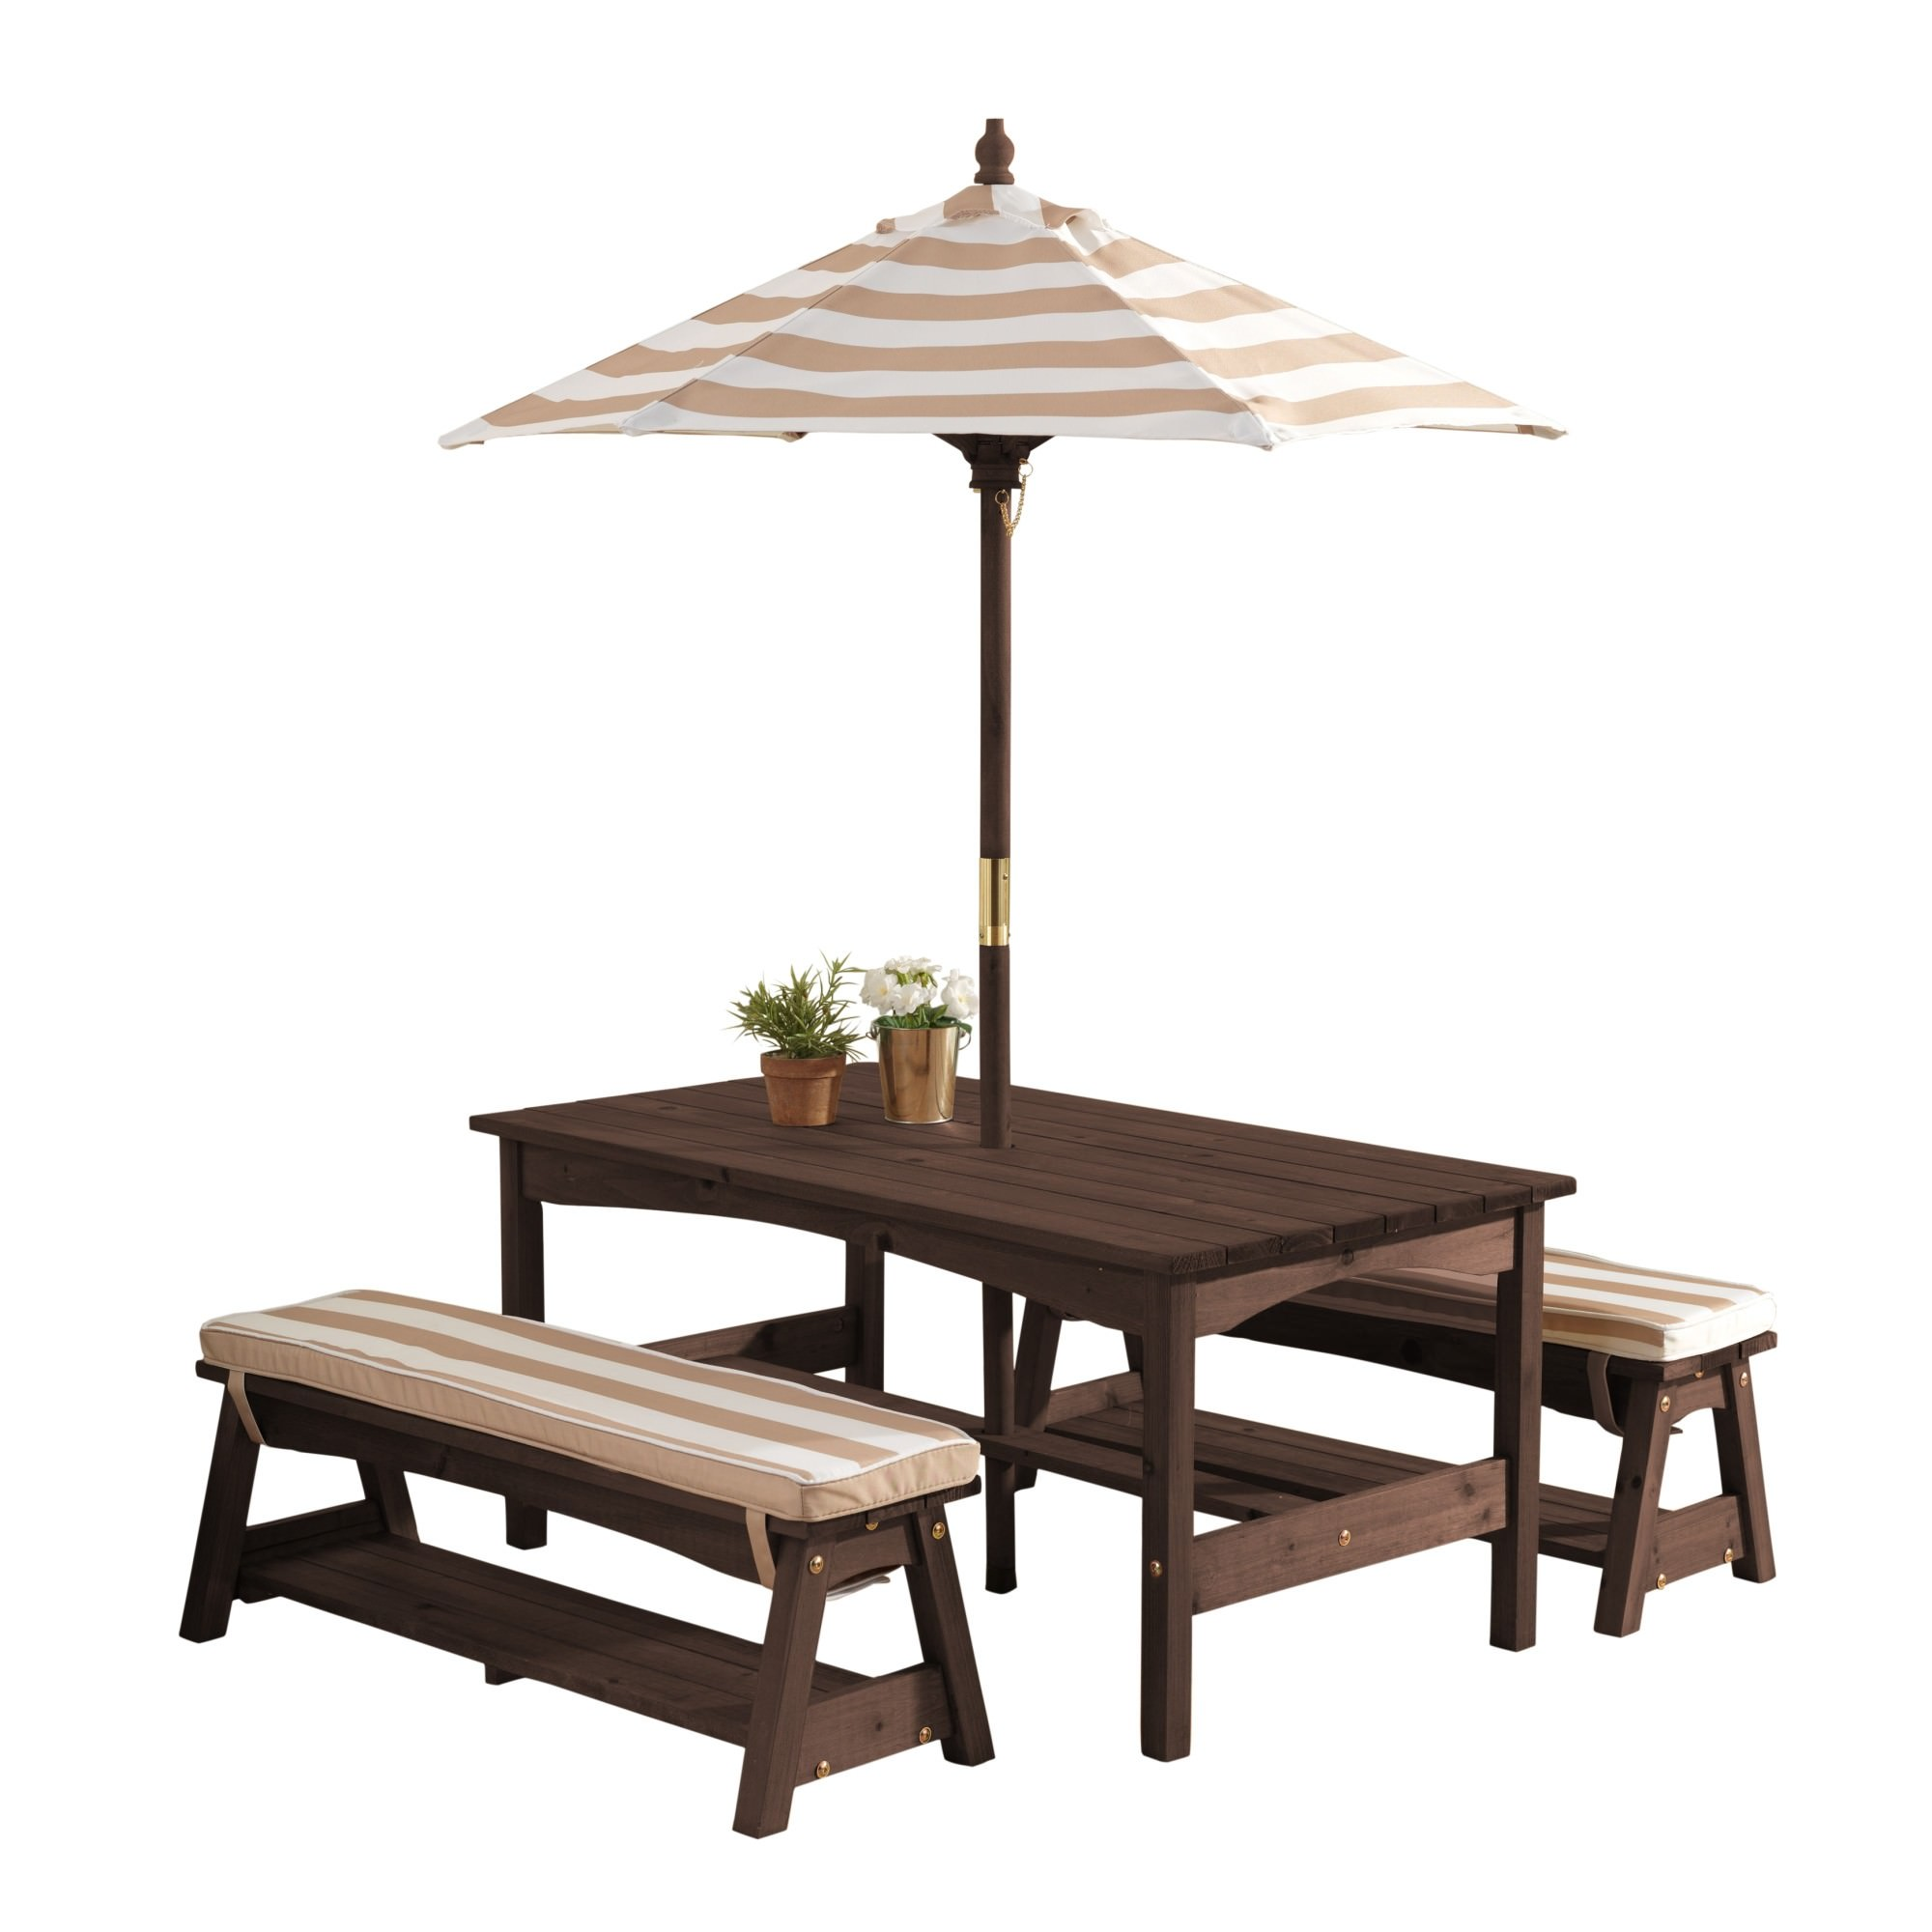 Kidkraft Kids Outdoor Table and Bench Set with Cushions and Umbrella - Oatmeal and White Stripes